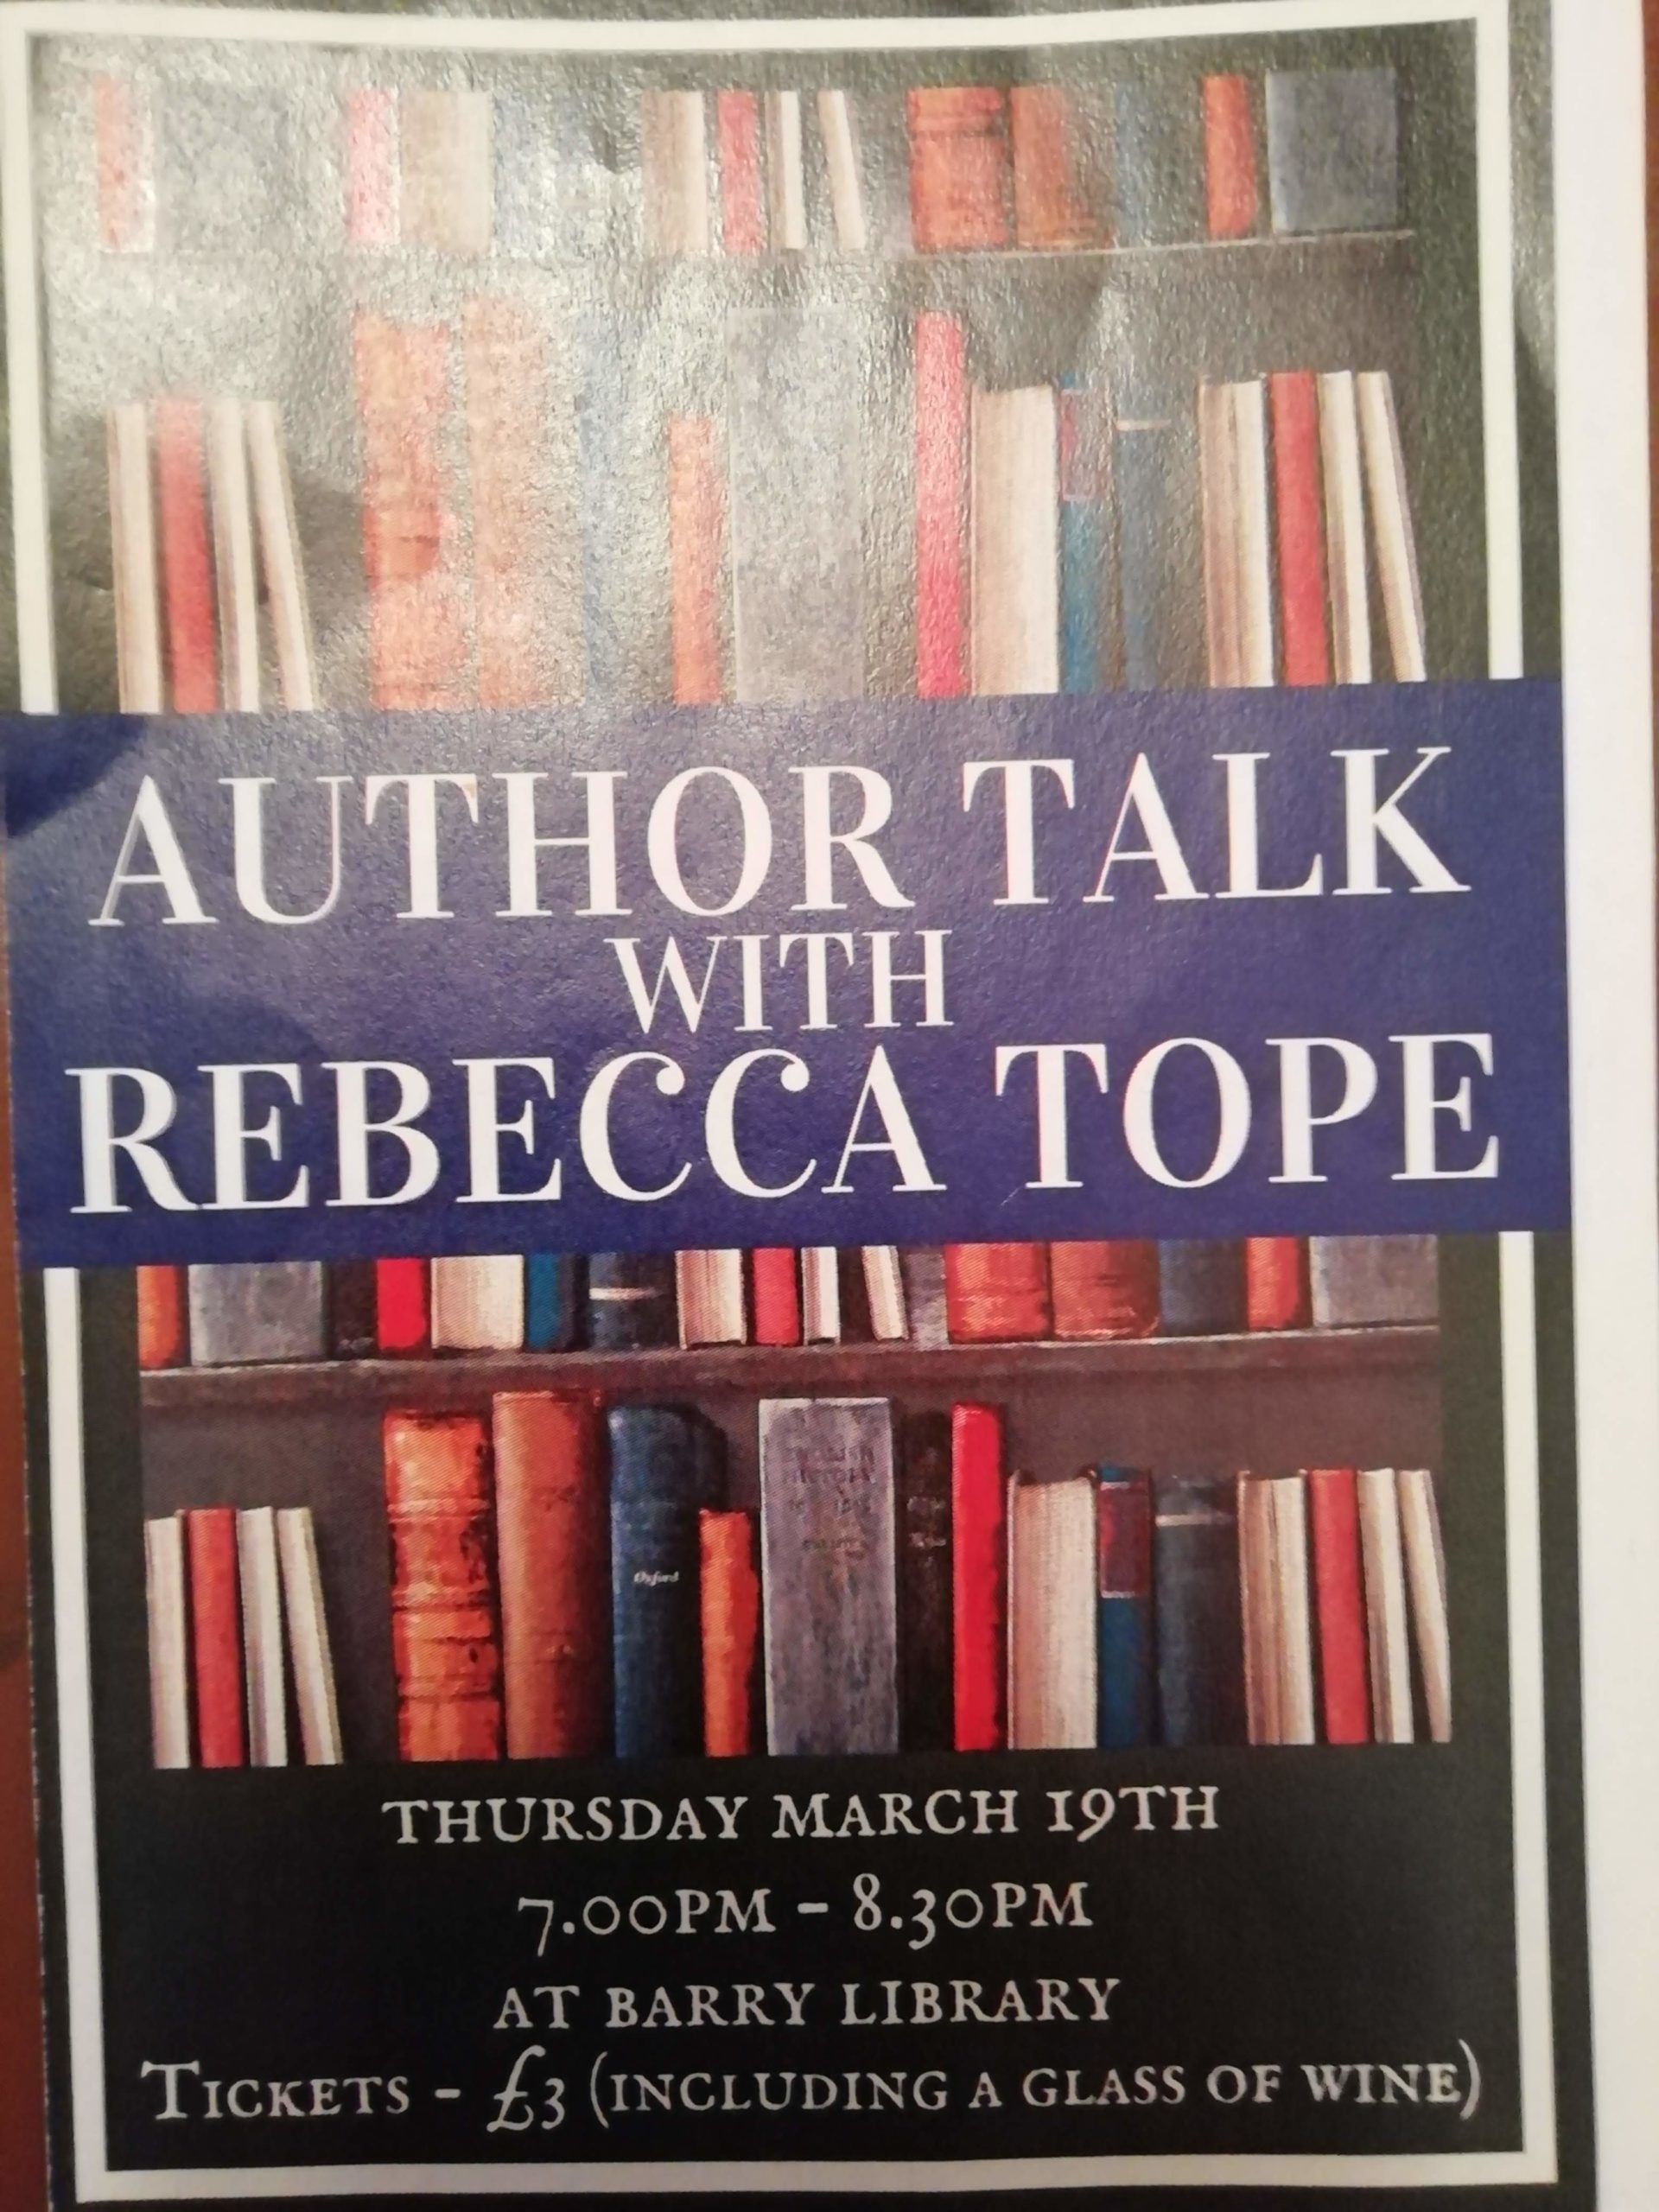 Author Talk with Rebecca Tope.